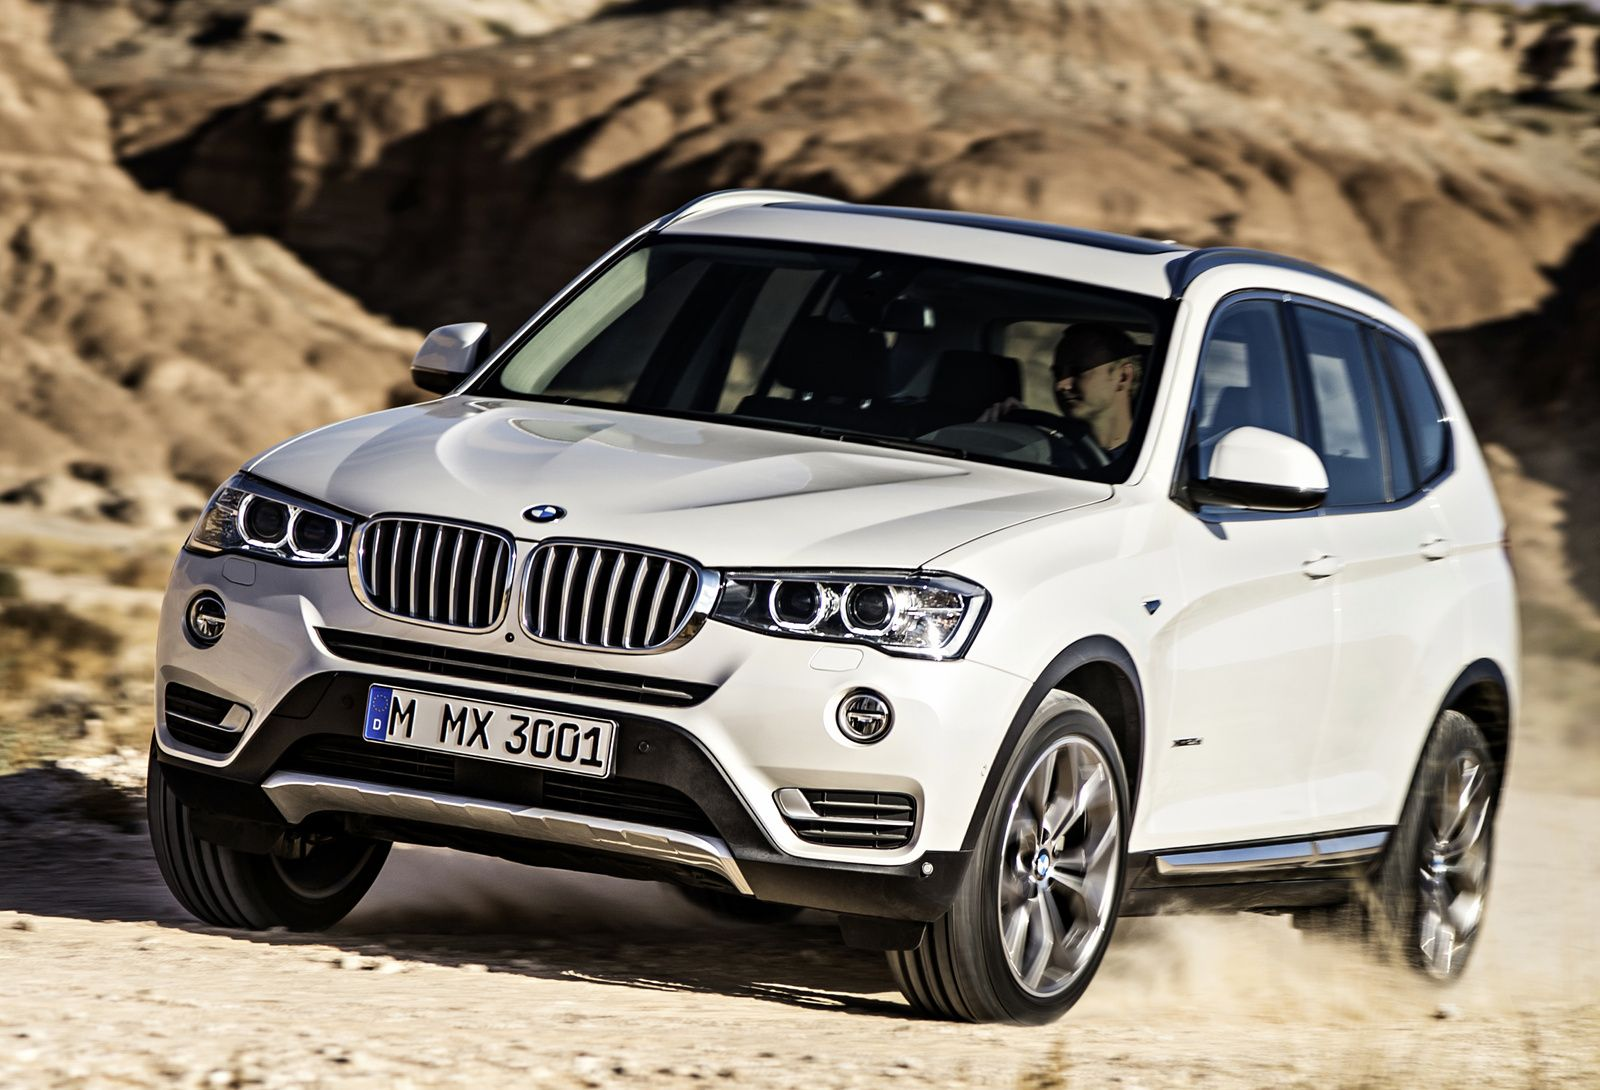 76 best lifestyle bmw x3 images on pinterest bmw x3 bmw cars and car